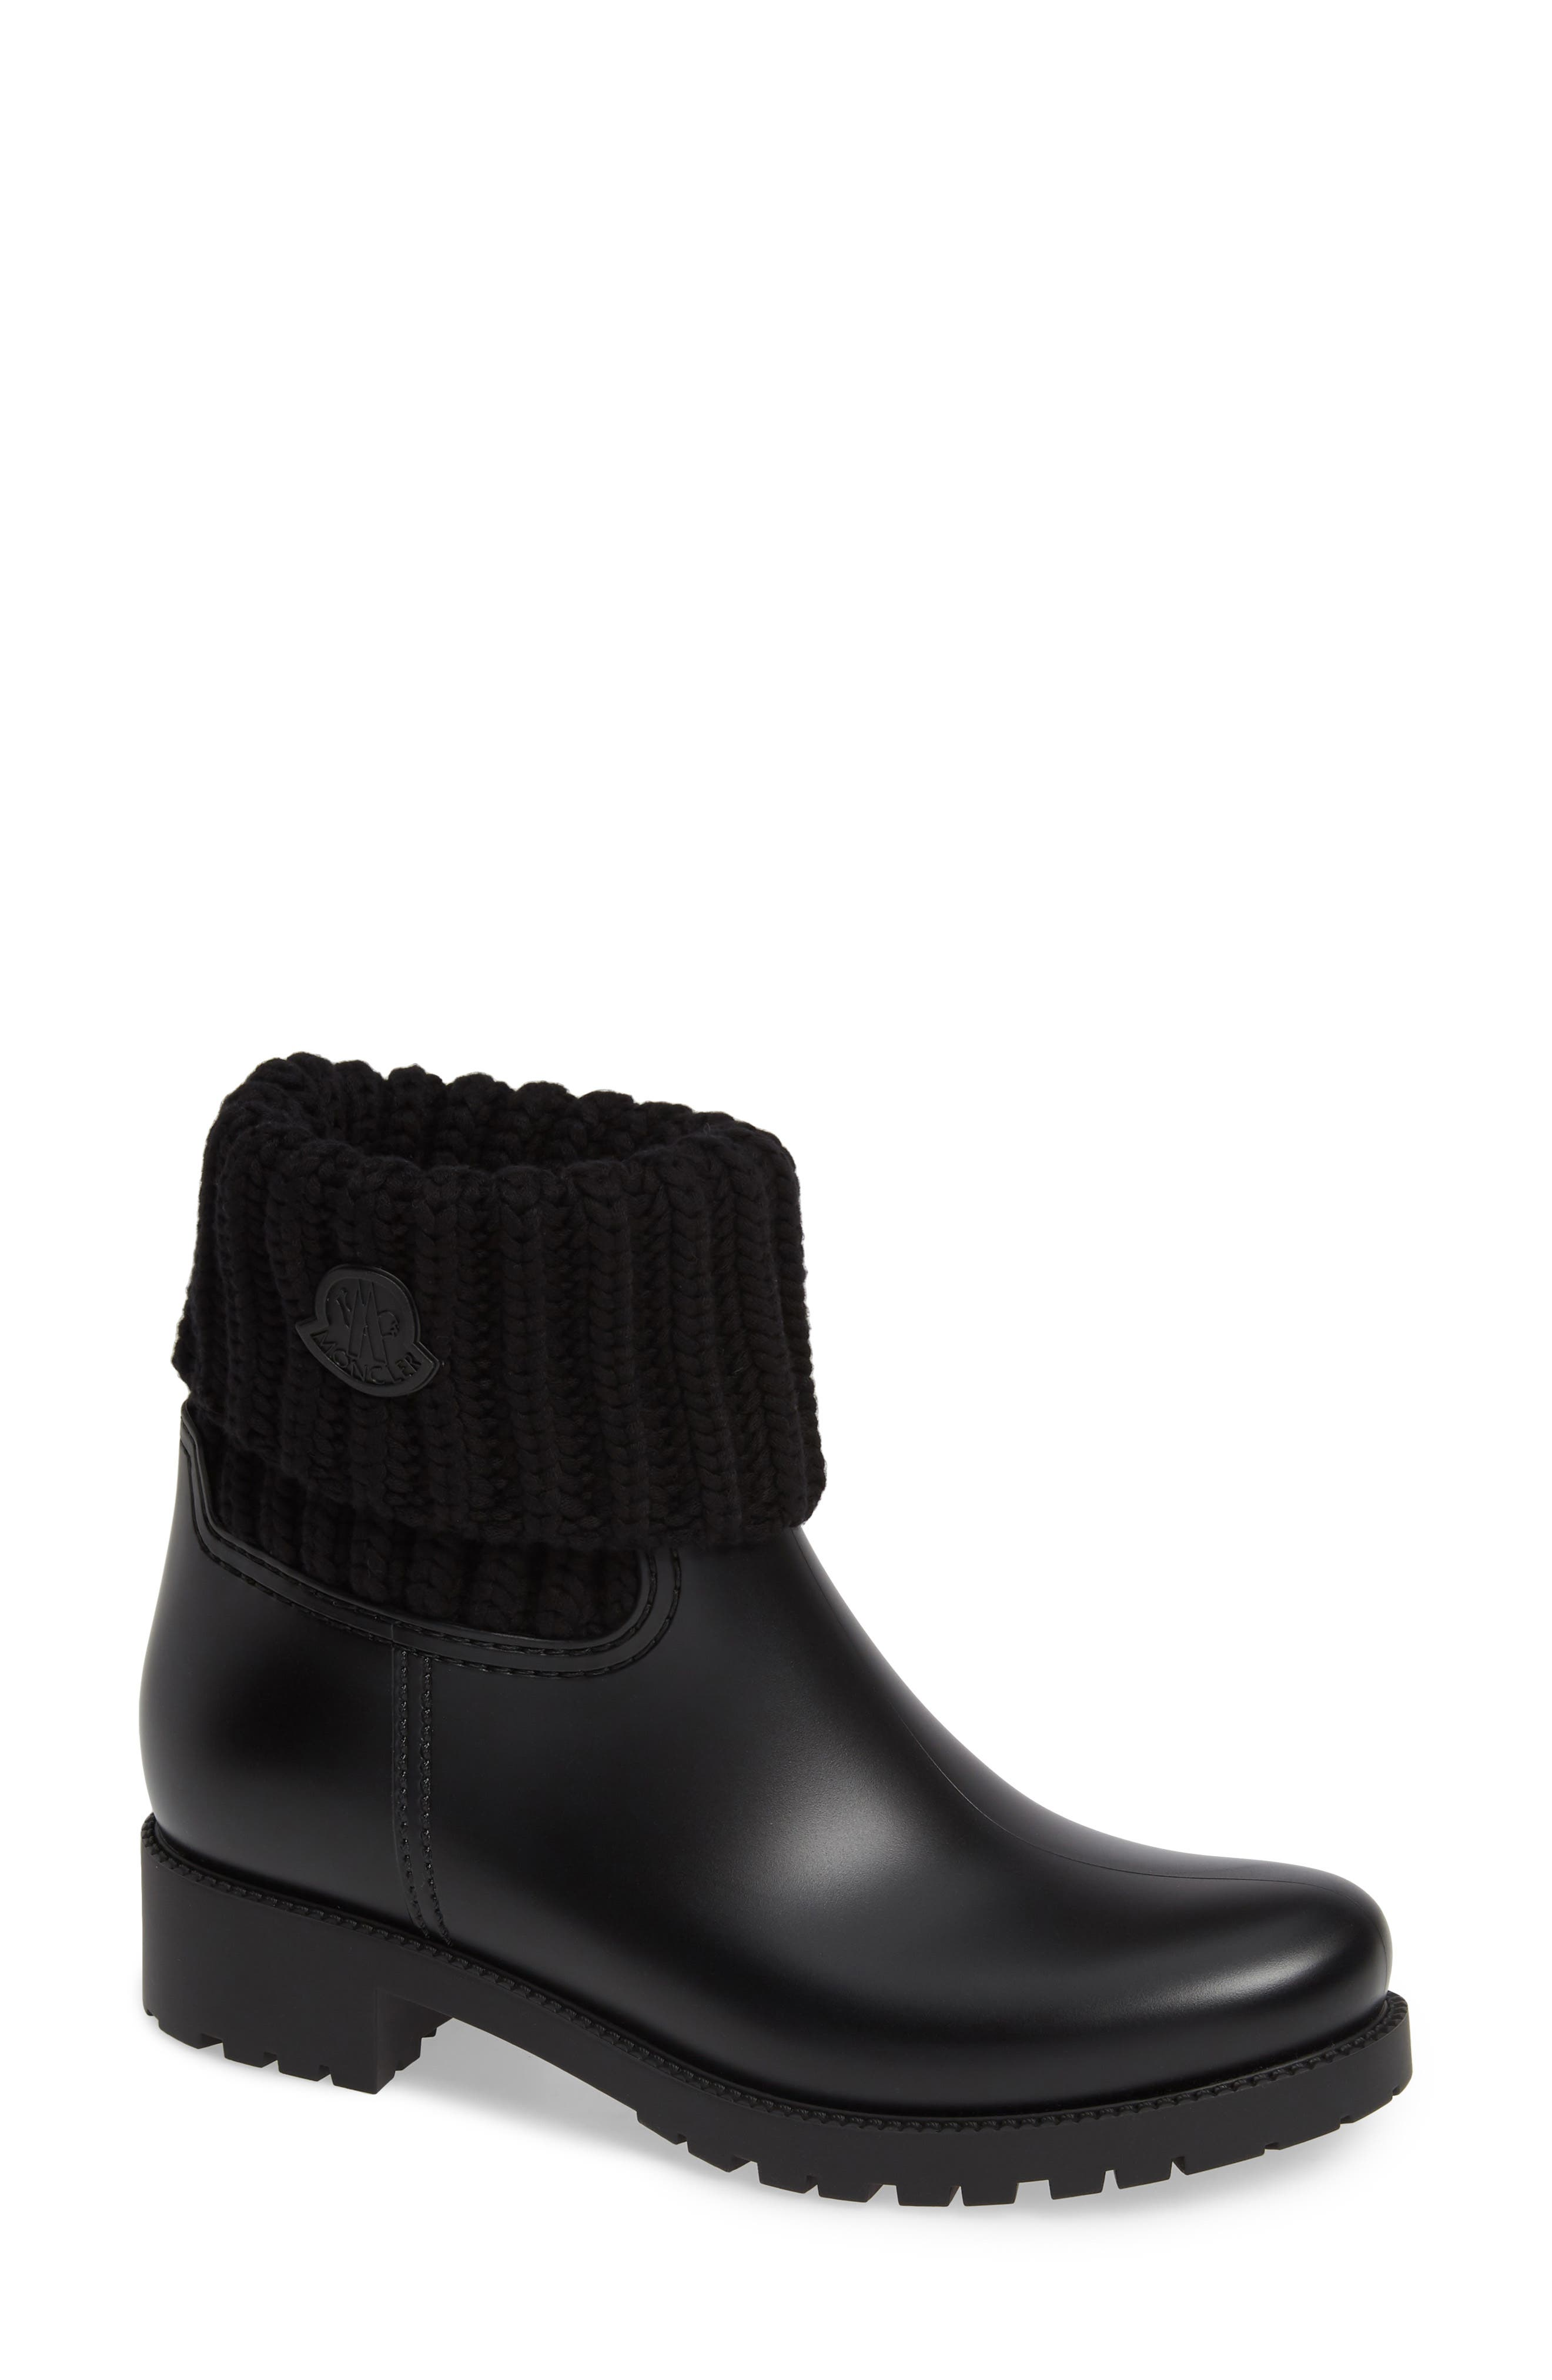 MONCLER Ginette Stivale Knit Cuff Water Resistant Rain Boot, Main, color, BLACK